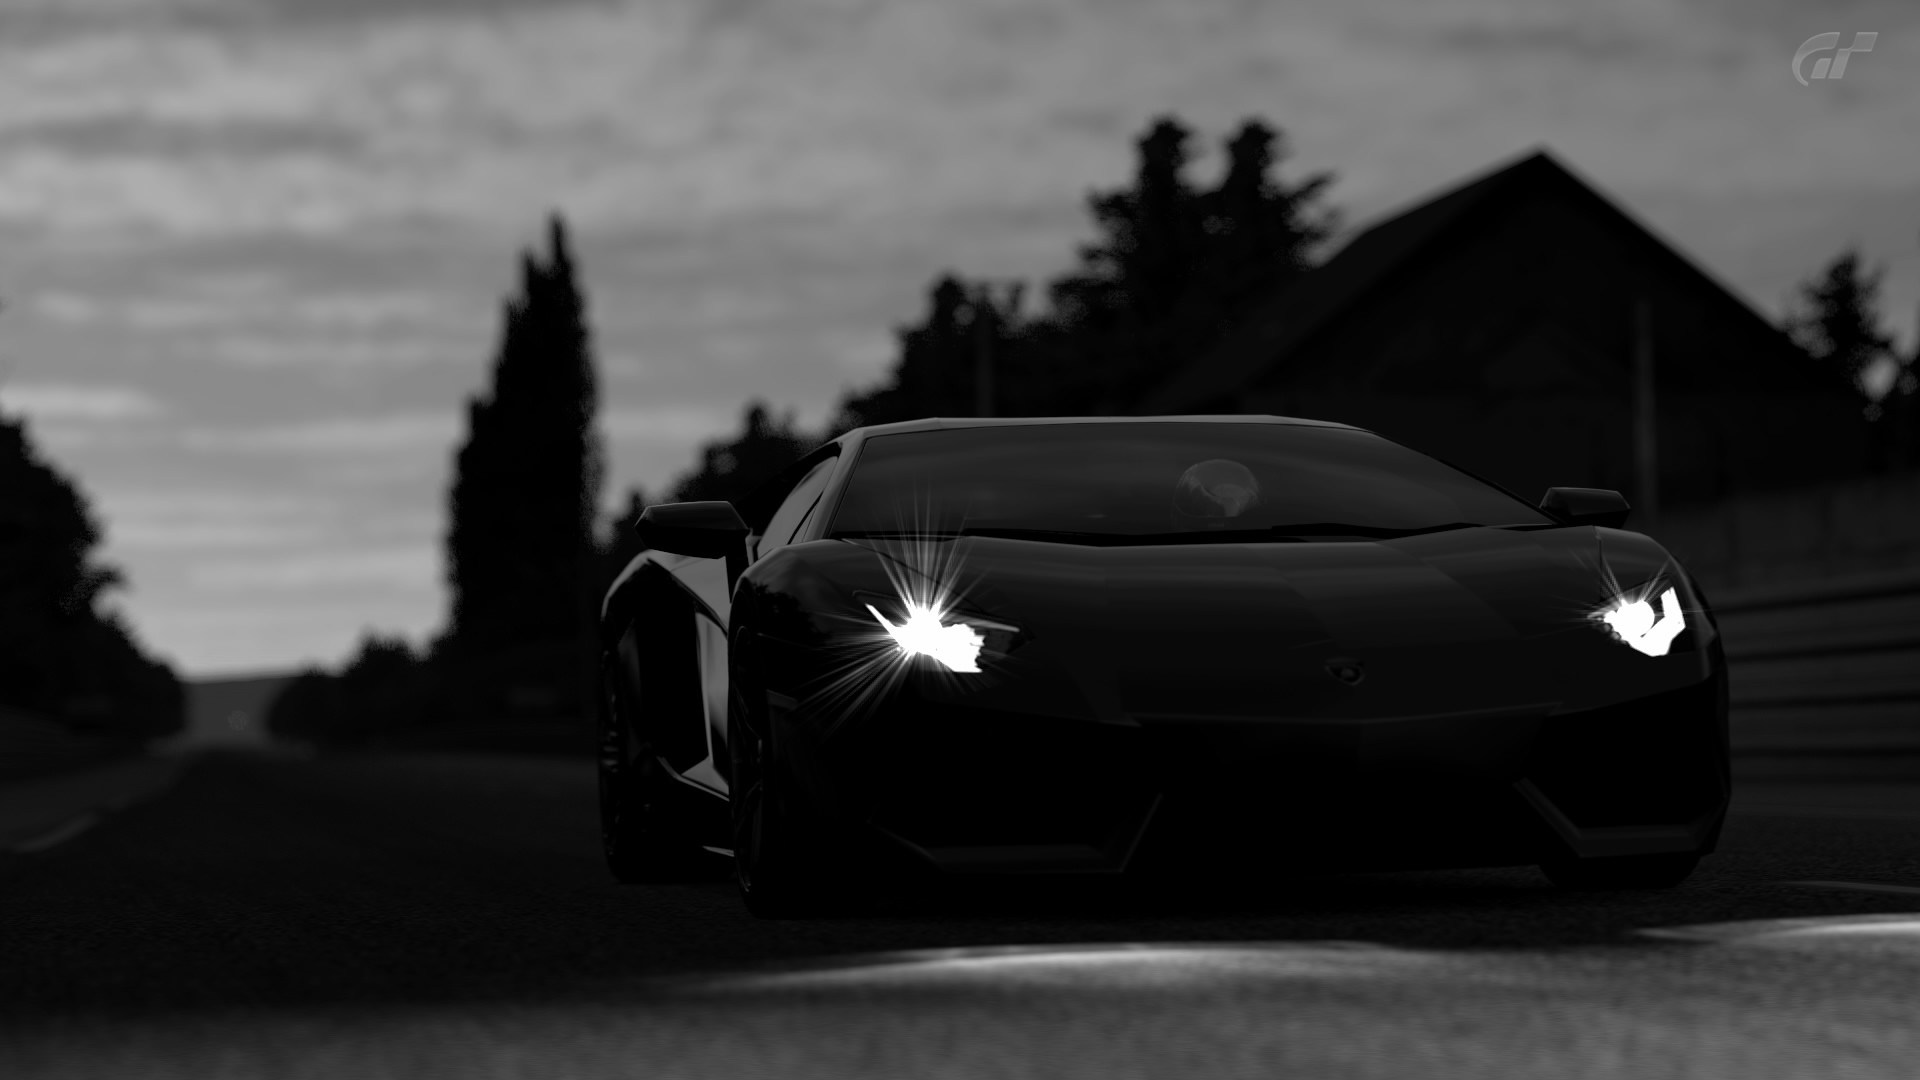 Black Wallpaper Background : Lamborghini Desktop Backgrounds (67+ images)